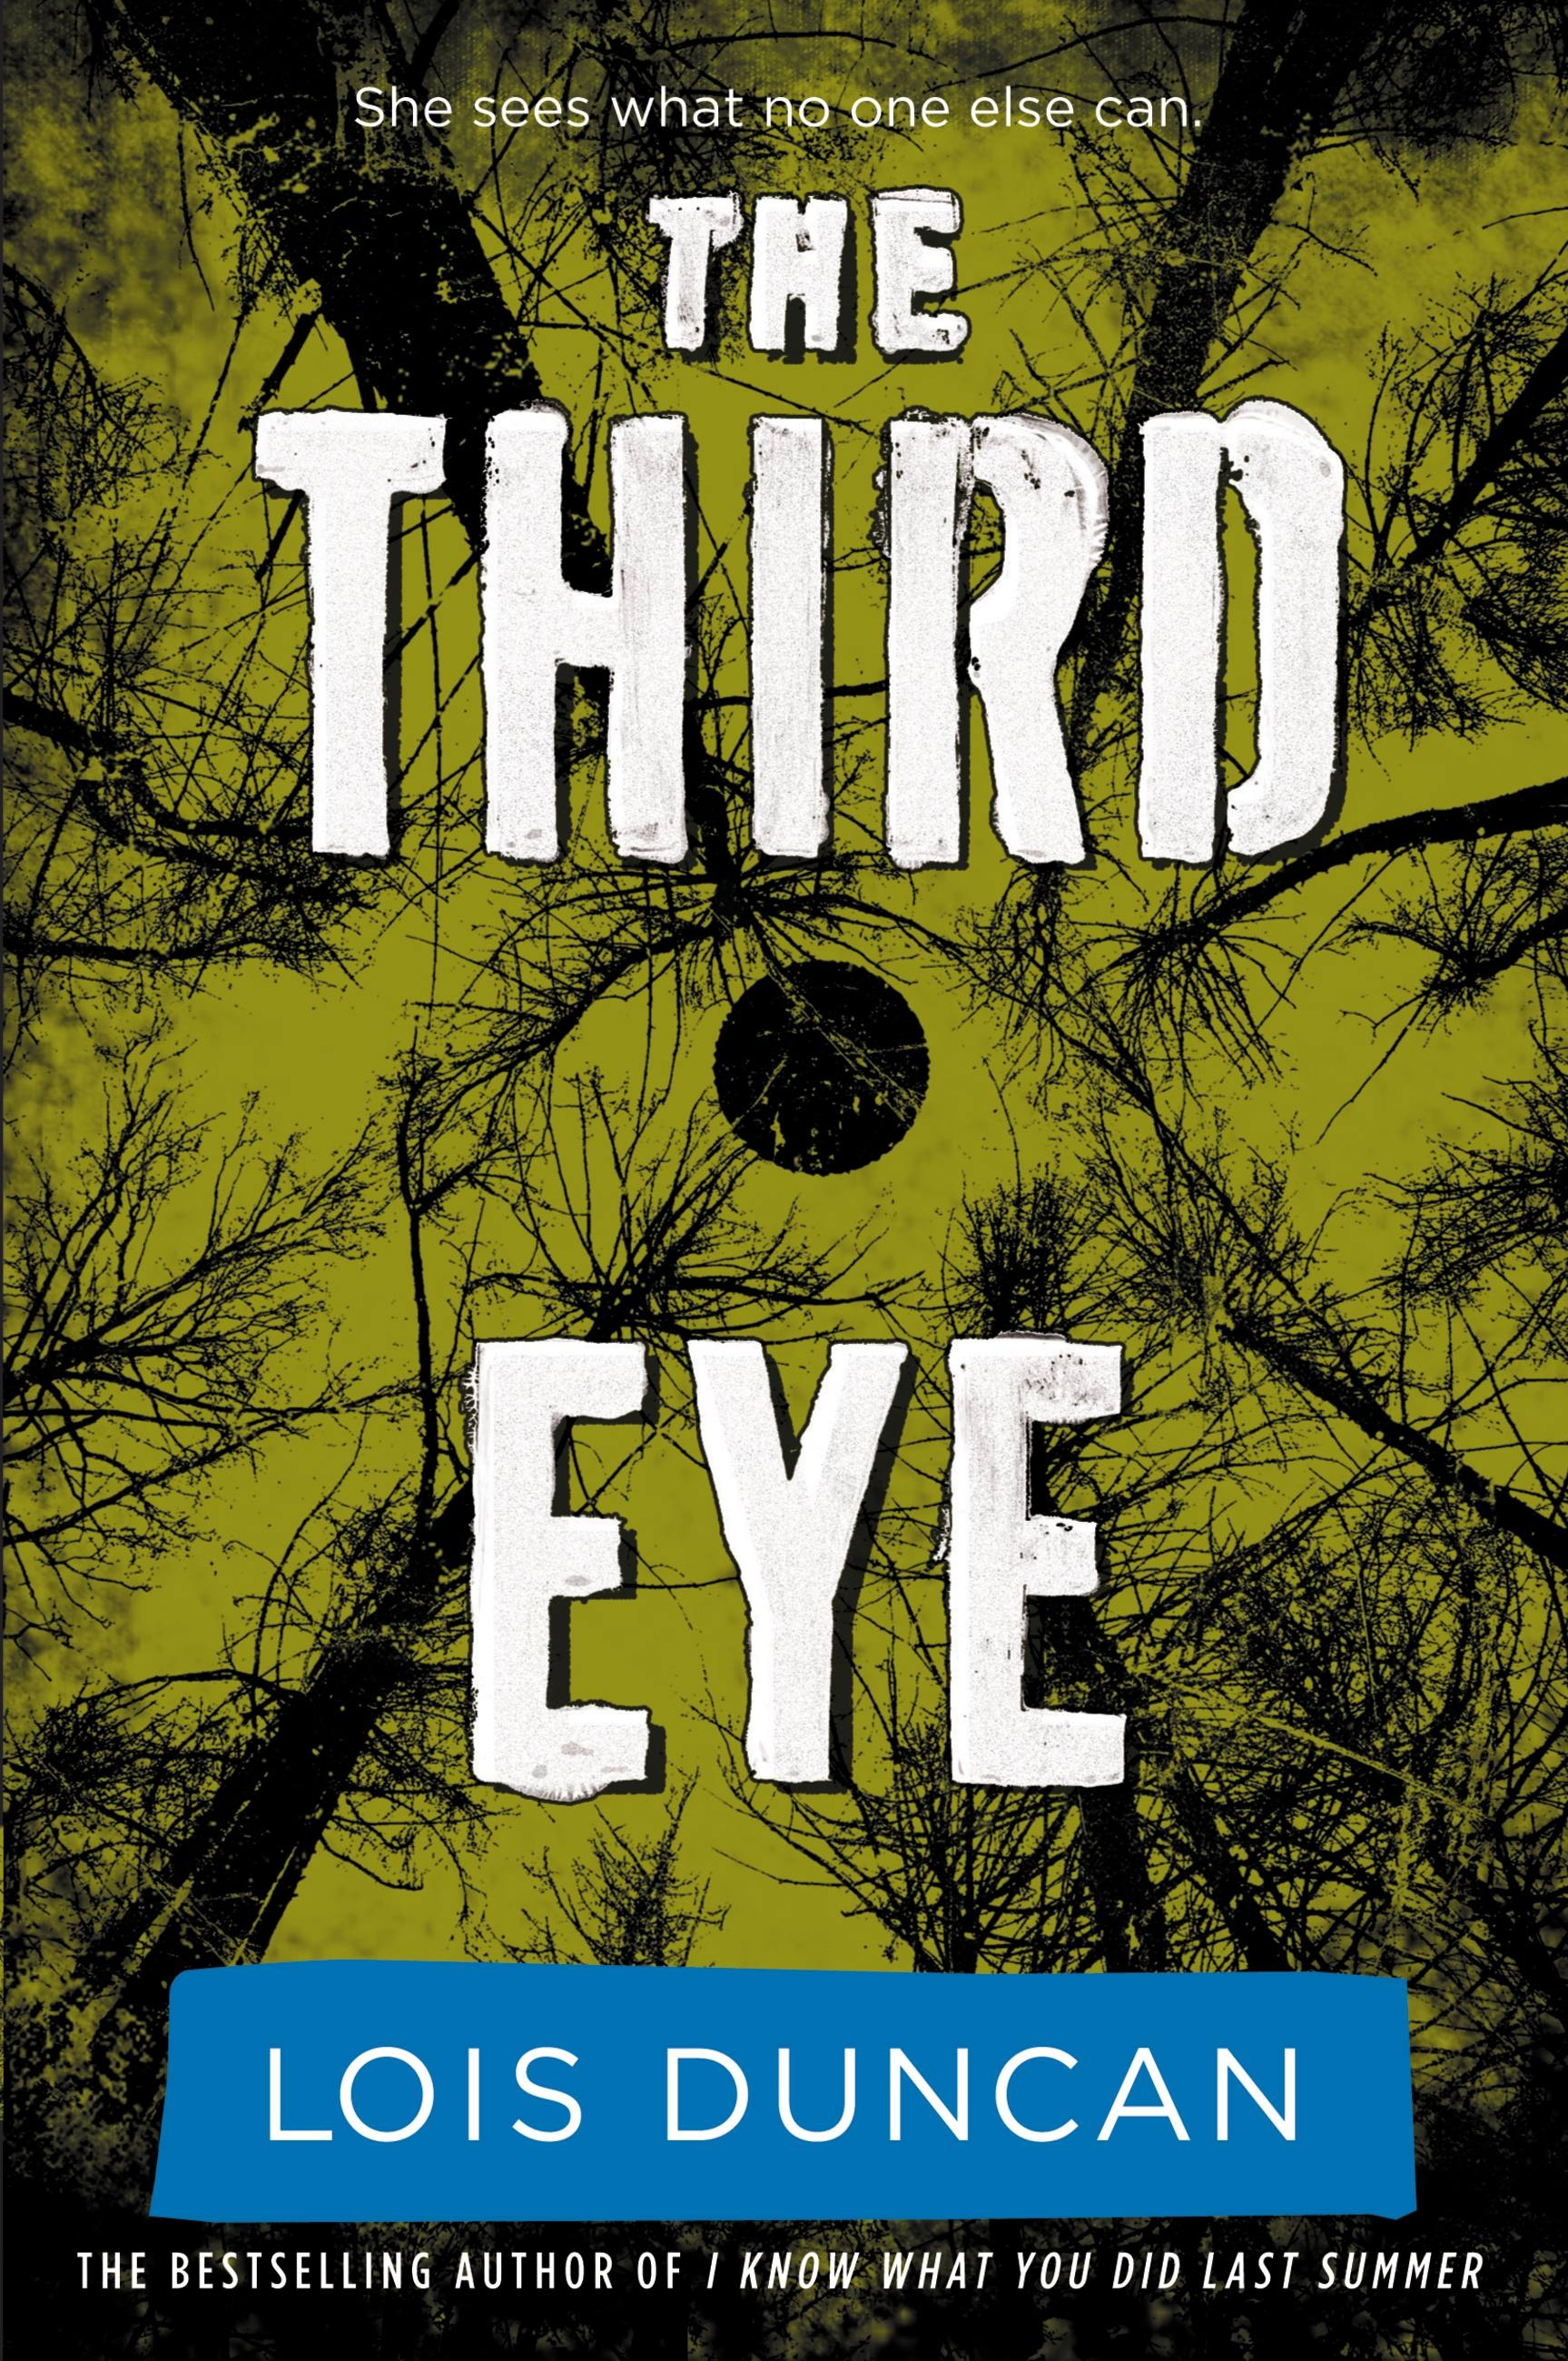 a summary of the novel the third eye by lois duncan The third eye (1984) about book: plot spoilersthe book starts out with karen at a baby-sitting job, and this is definitely a recurring theme in duncan's books, like the only job teenage girls can or want to get is babysitting.